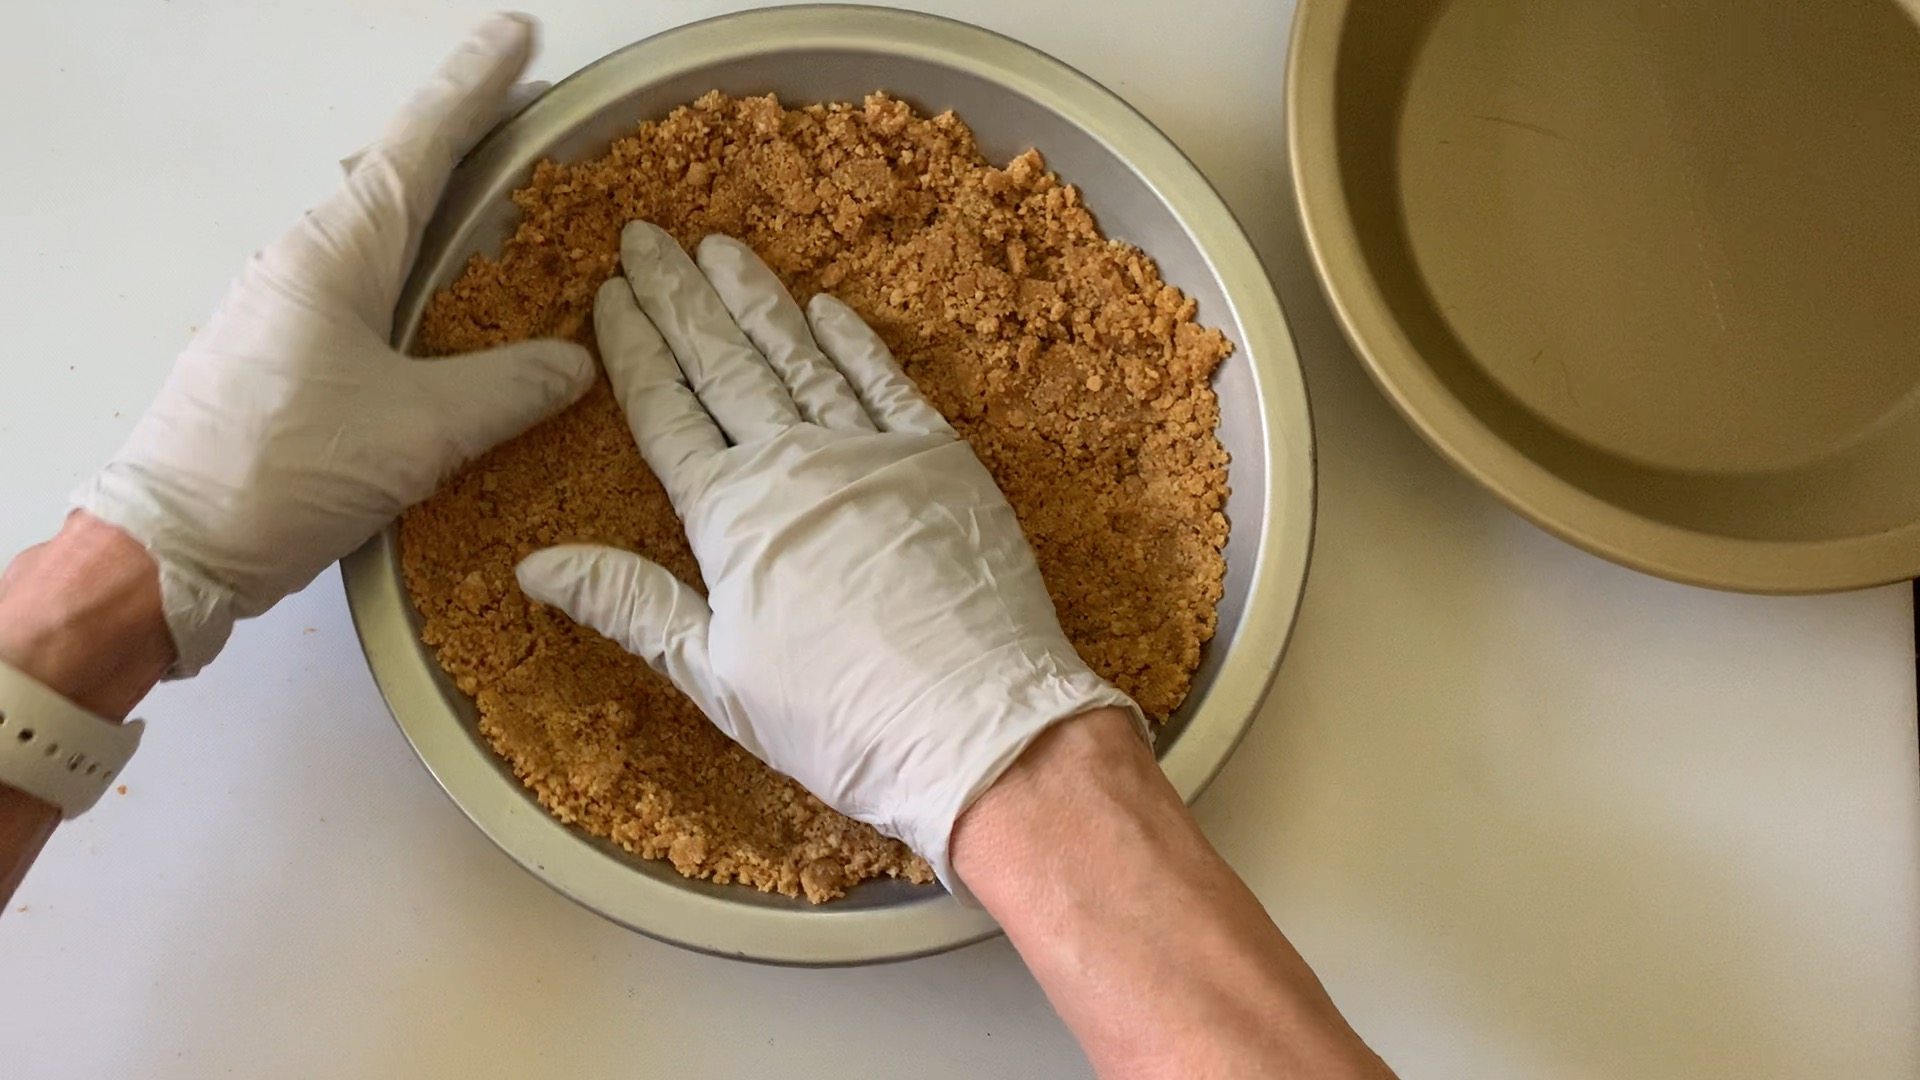 Using gloved hands to pat down crumbs